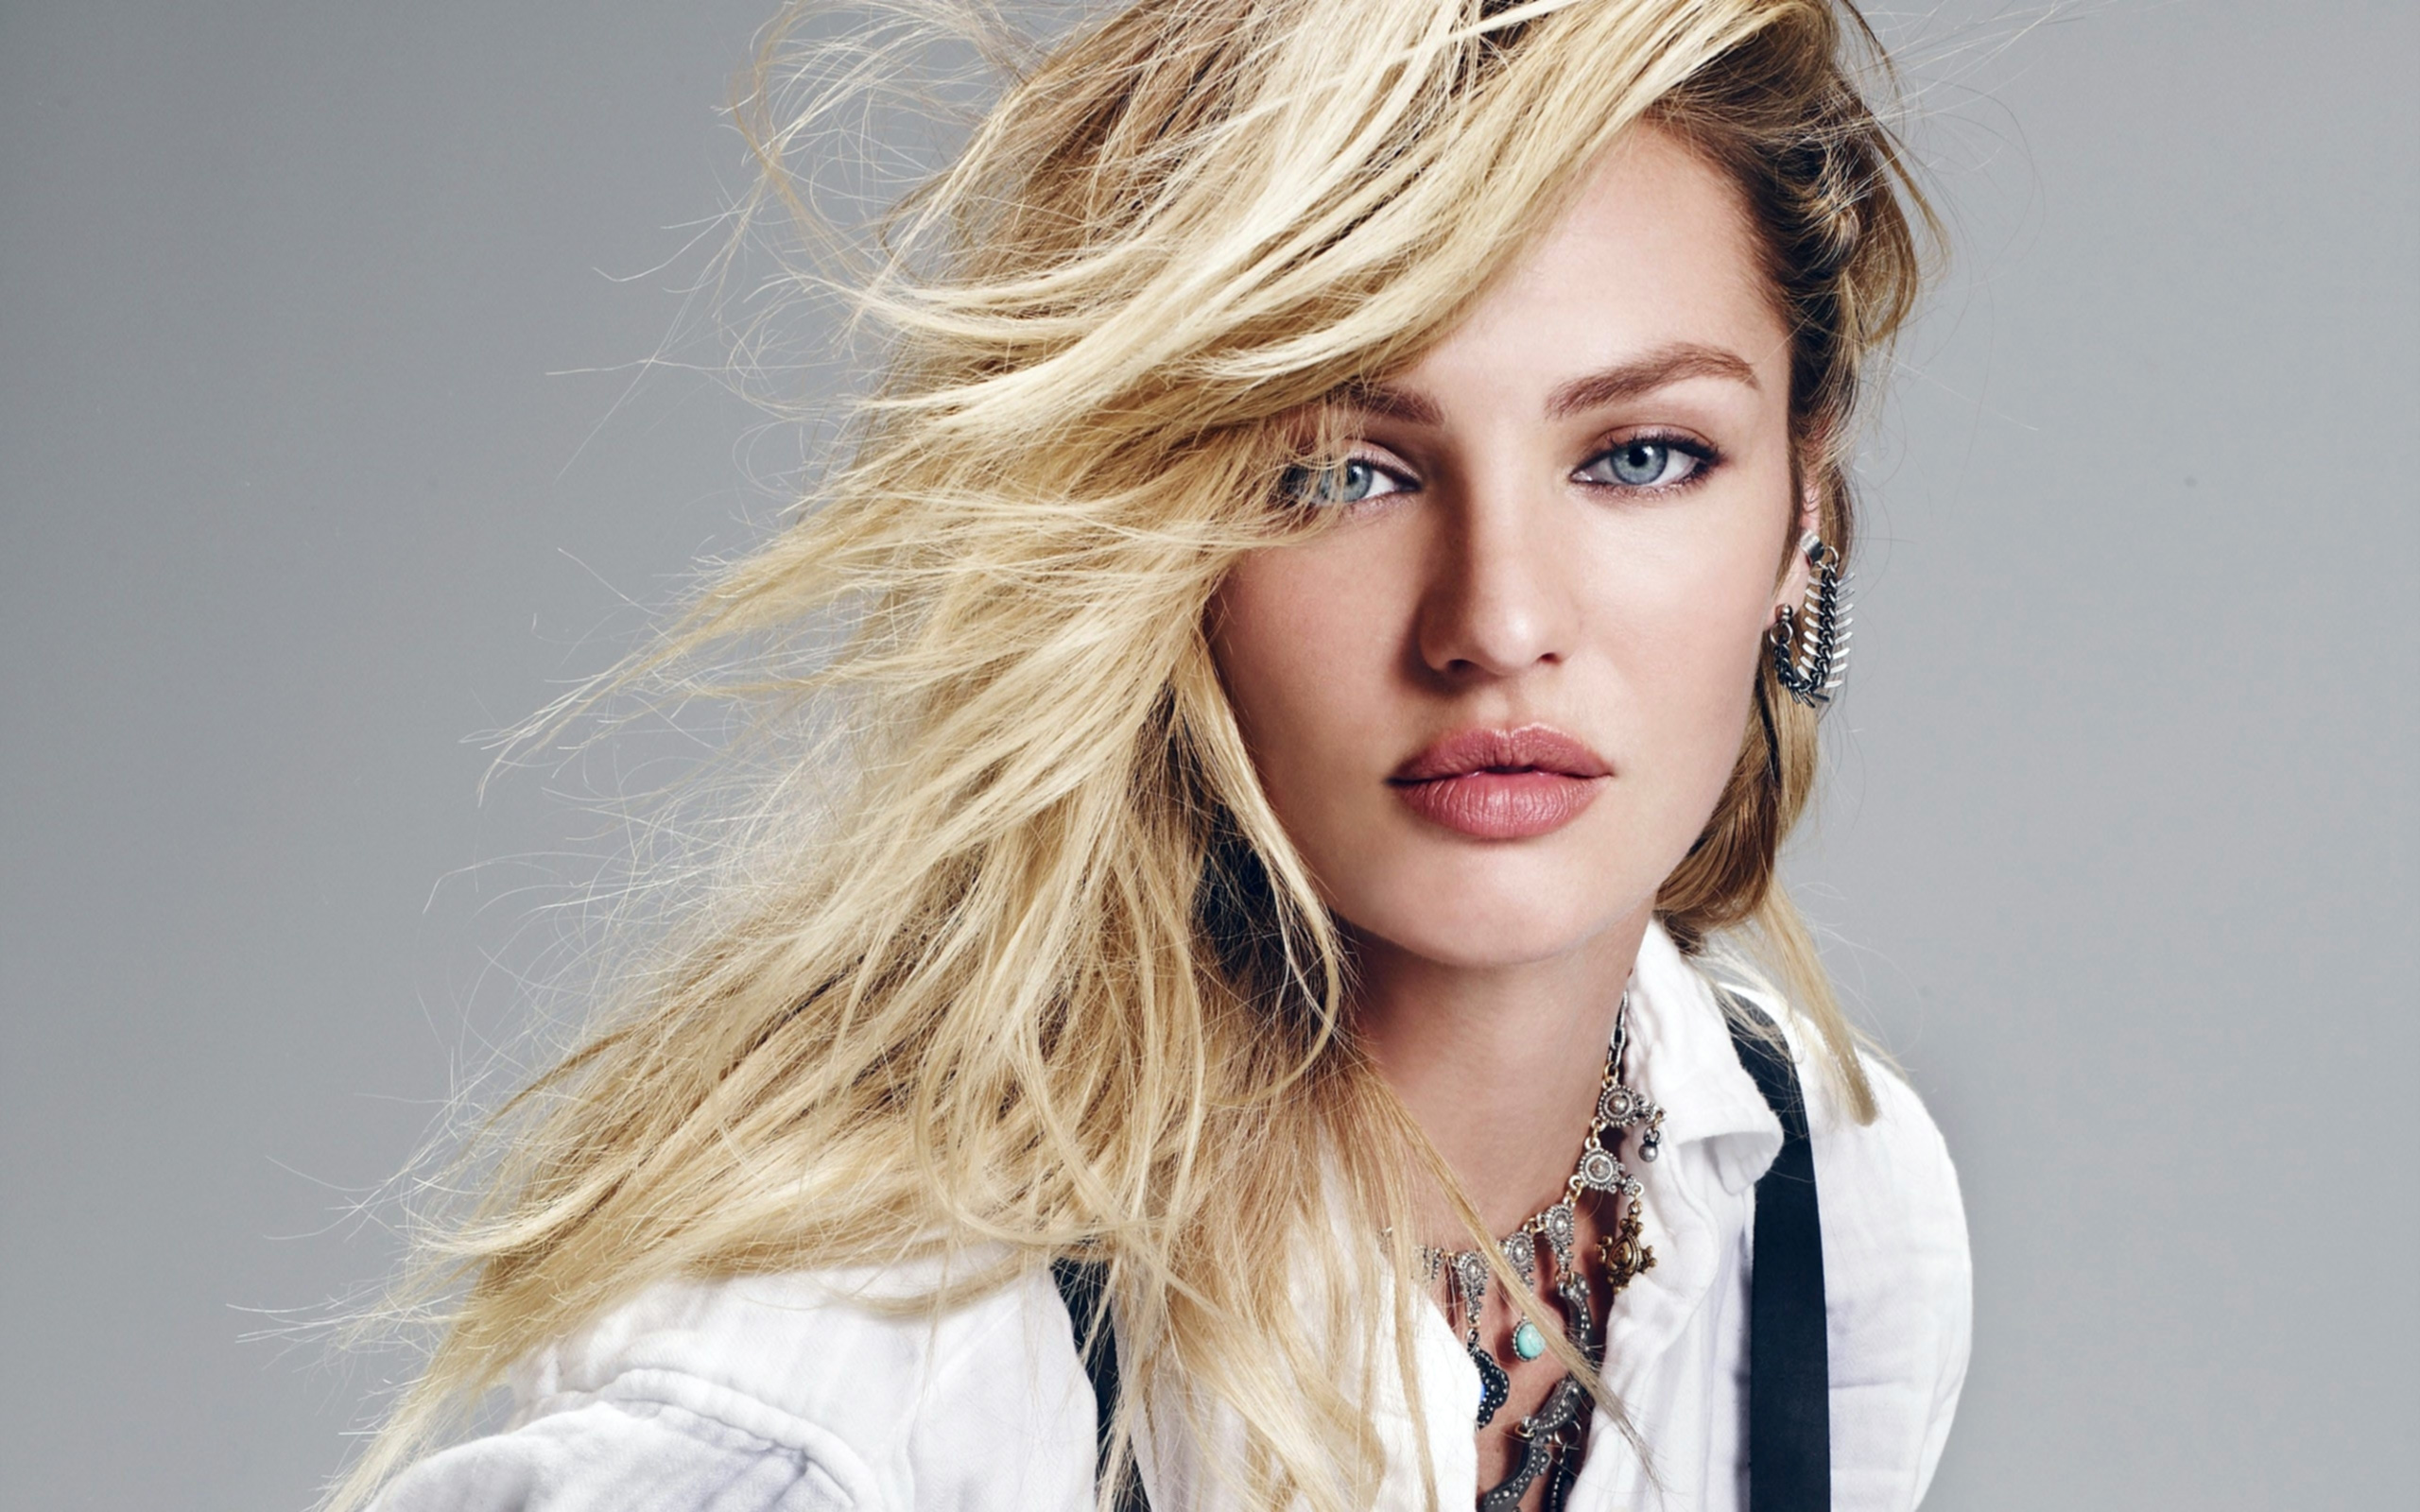 Candice Swanepoel HD Wallpaper   Background Image   2480x1550